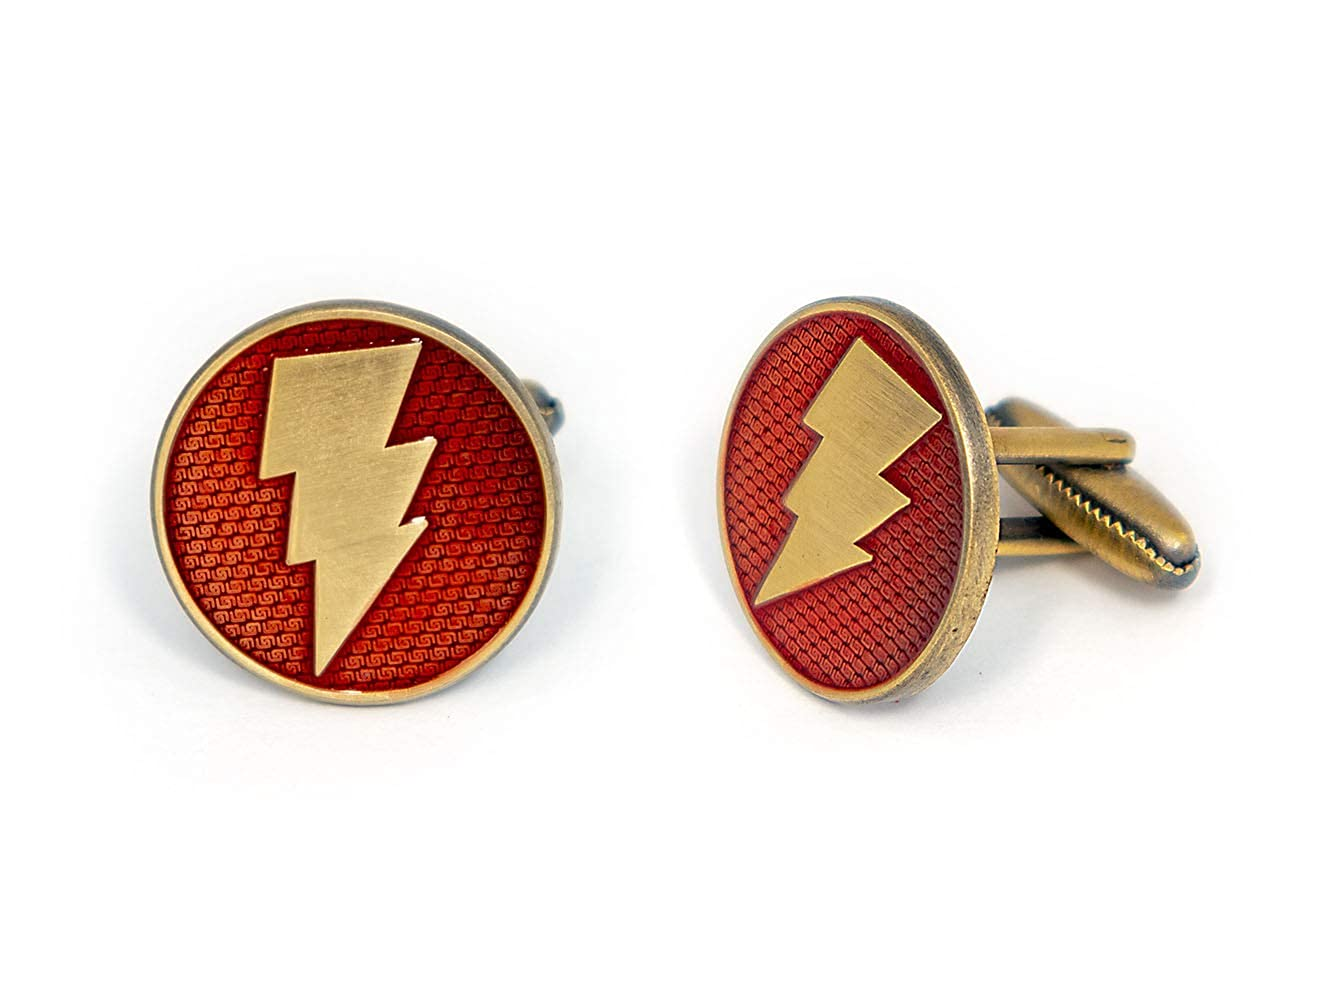 Shazam Cufflinks Captain Marvel Tie Clip Nightwing Cuff Links Link Wedding Party Gift DC Comics Batman vs Superman Tie Tack Jewelry Justice League Avengers Groomsmen Gifts Captain Marvel Cufflinks SharedImagination